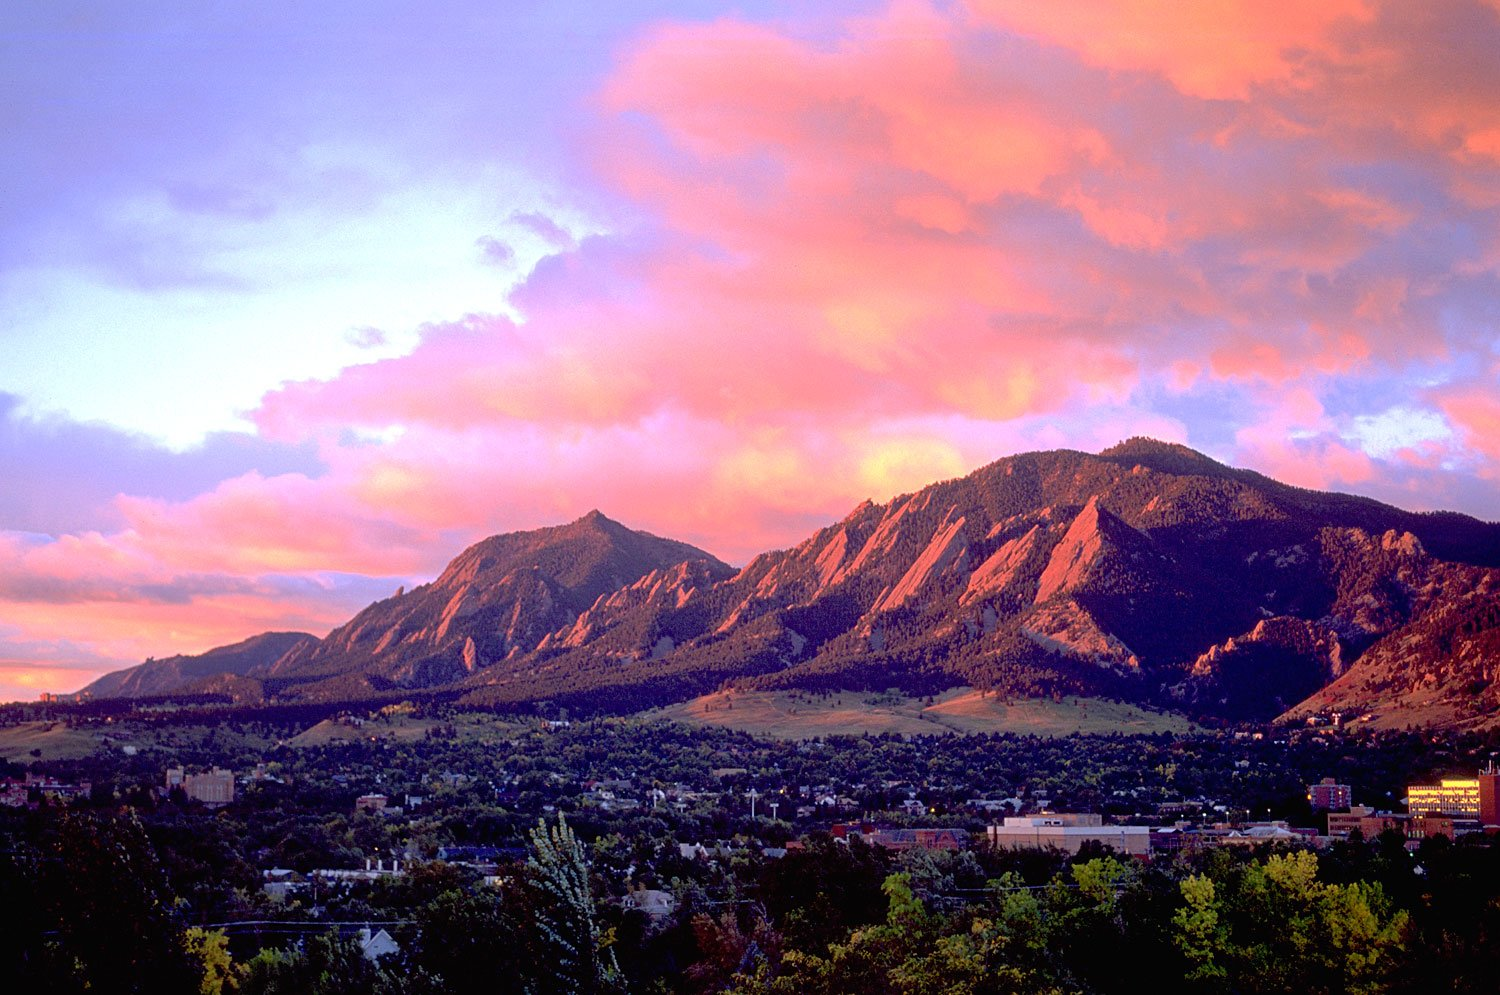 boulder colorado wallpaper - photo #14